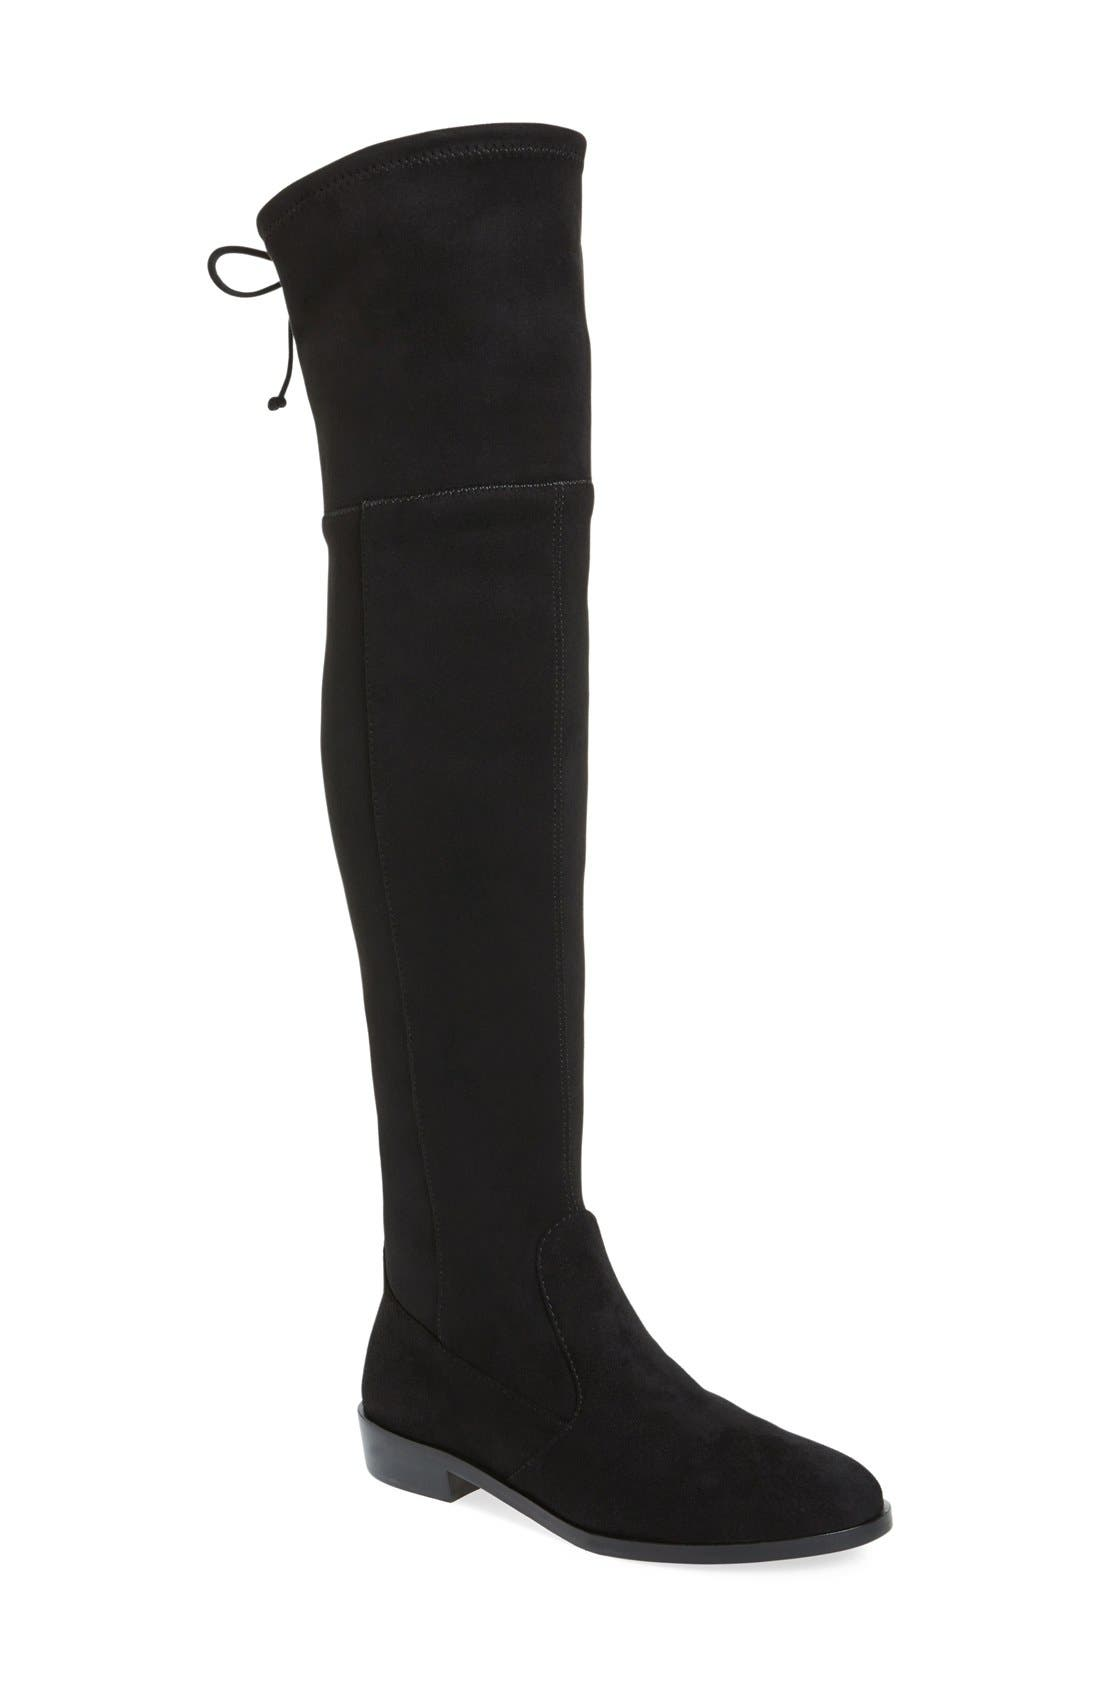 VINCE CAMUTO Crisintha Over the Knee Boot, Main, color, 001